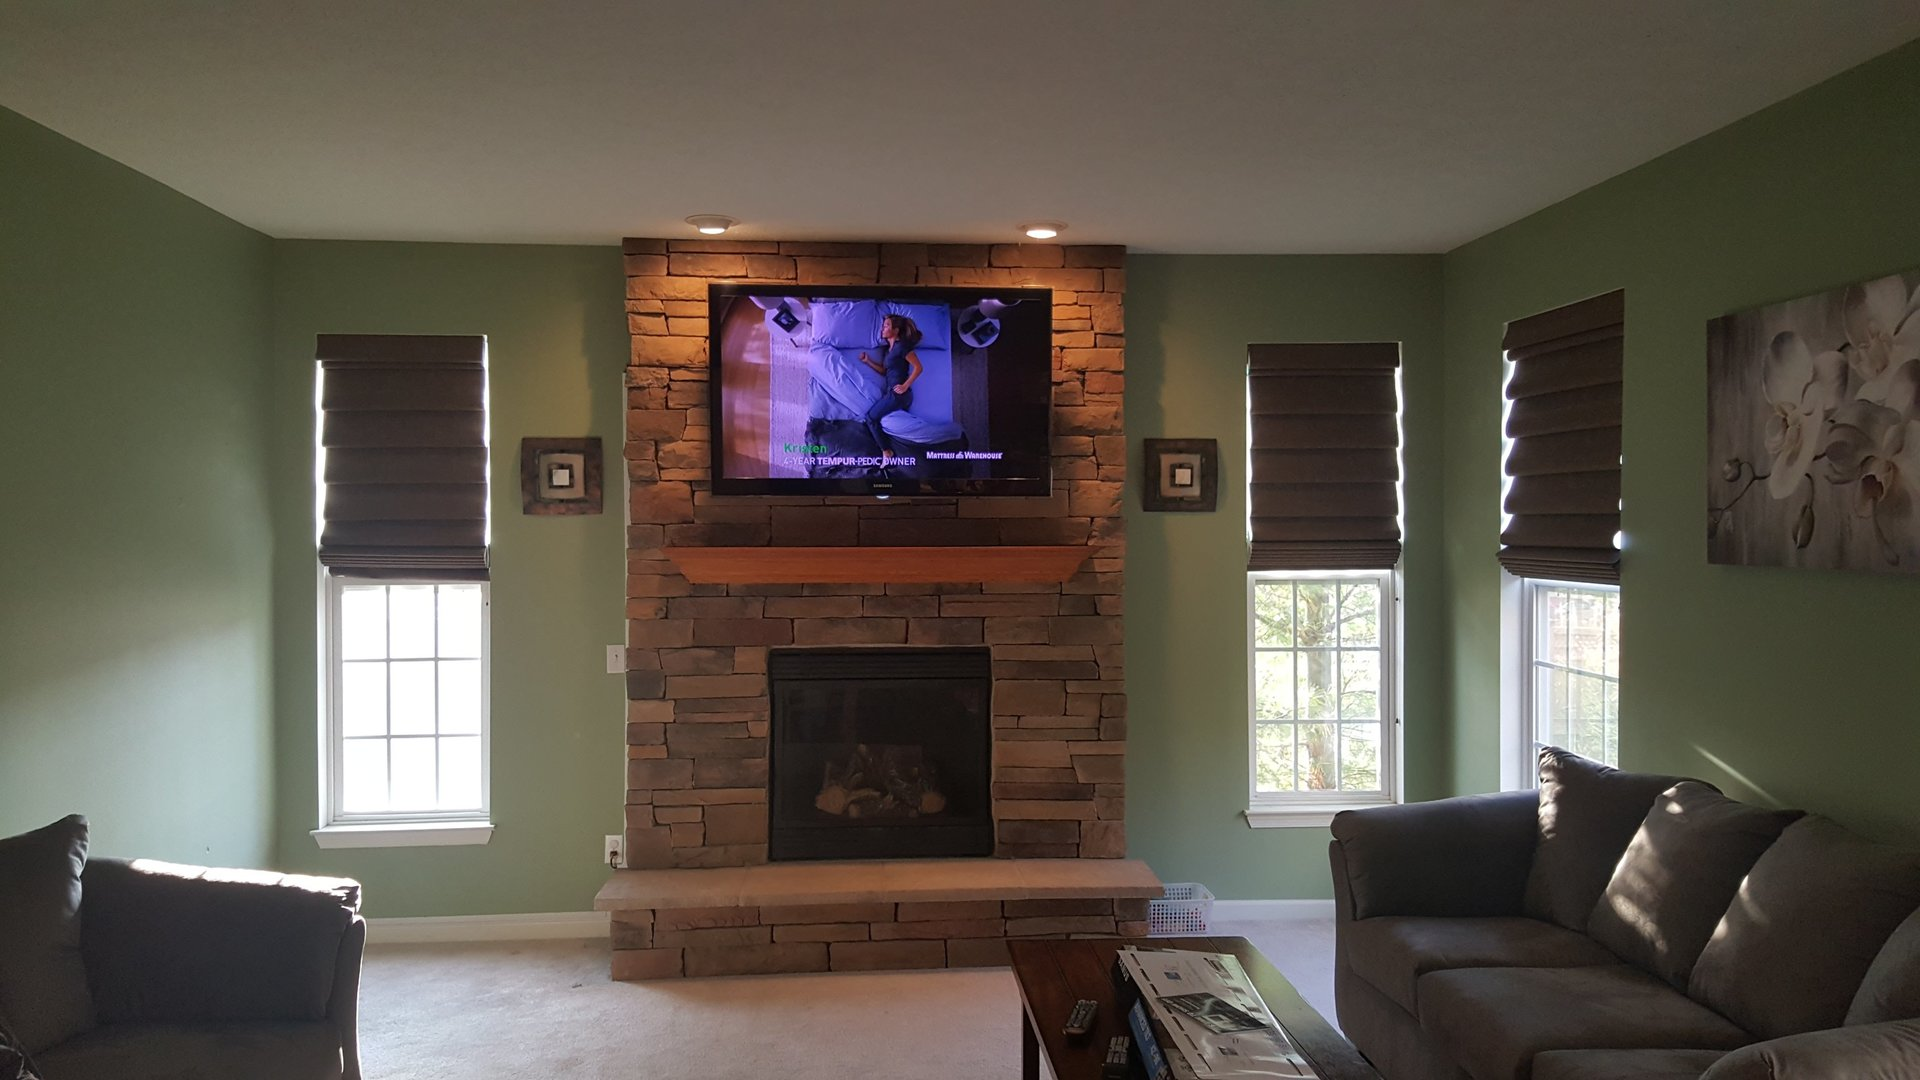 Tv Wall Mounting Fireplace Installation Setup Wiring A Slide Title